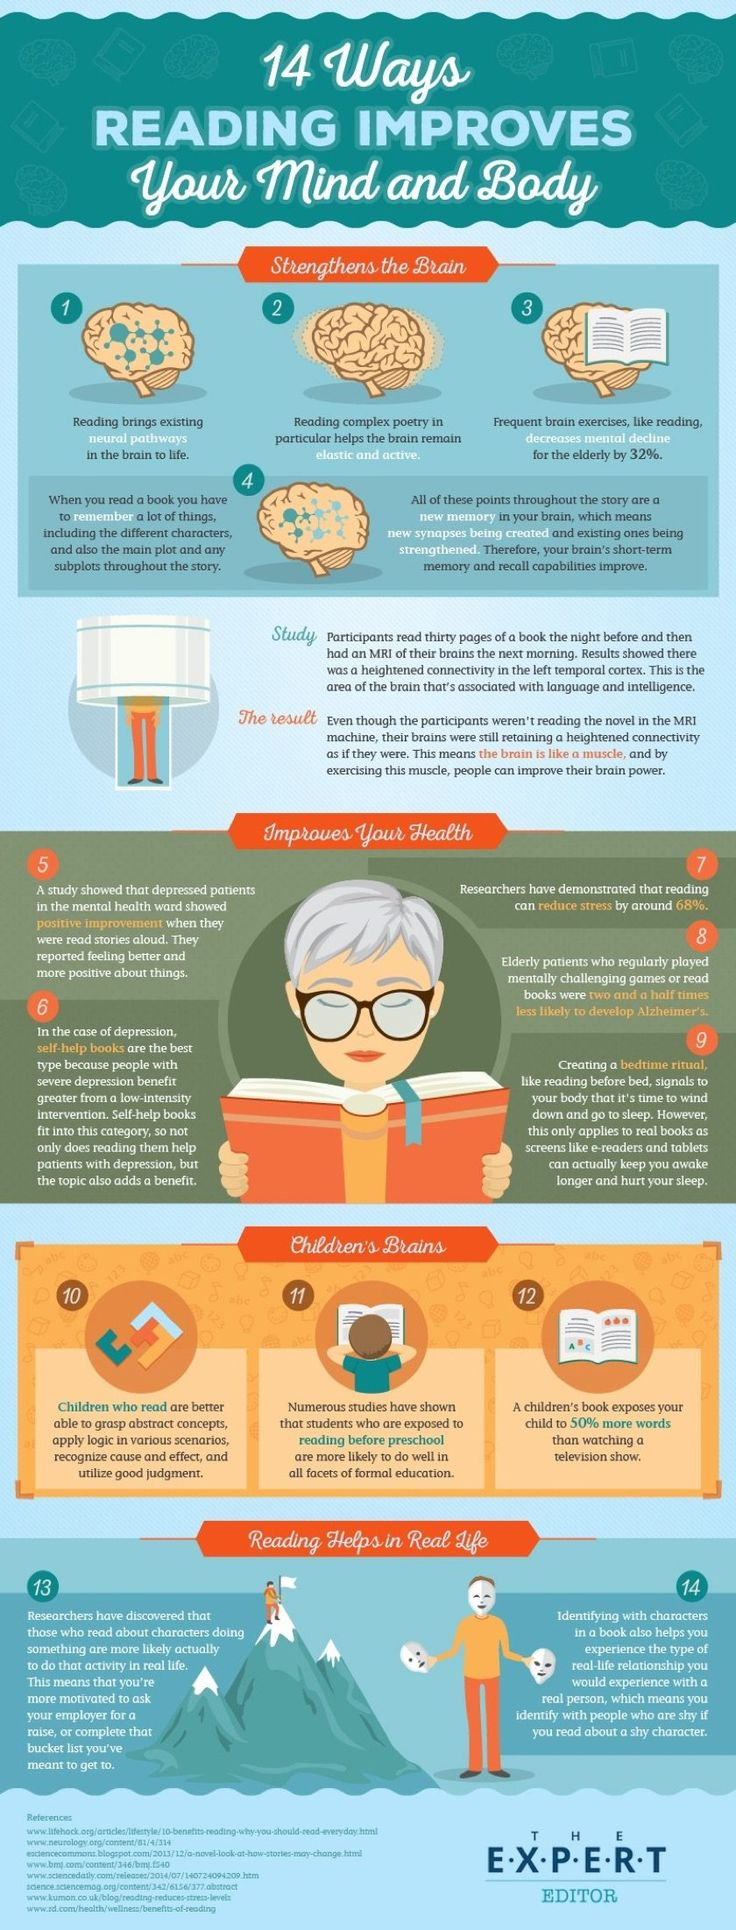 14 Ways Reading Improves Your Body And Mind (infographic)